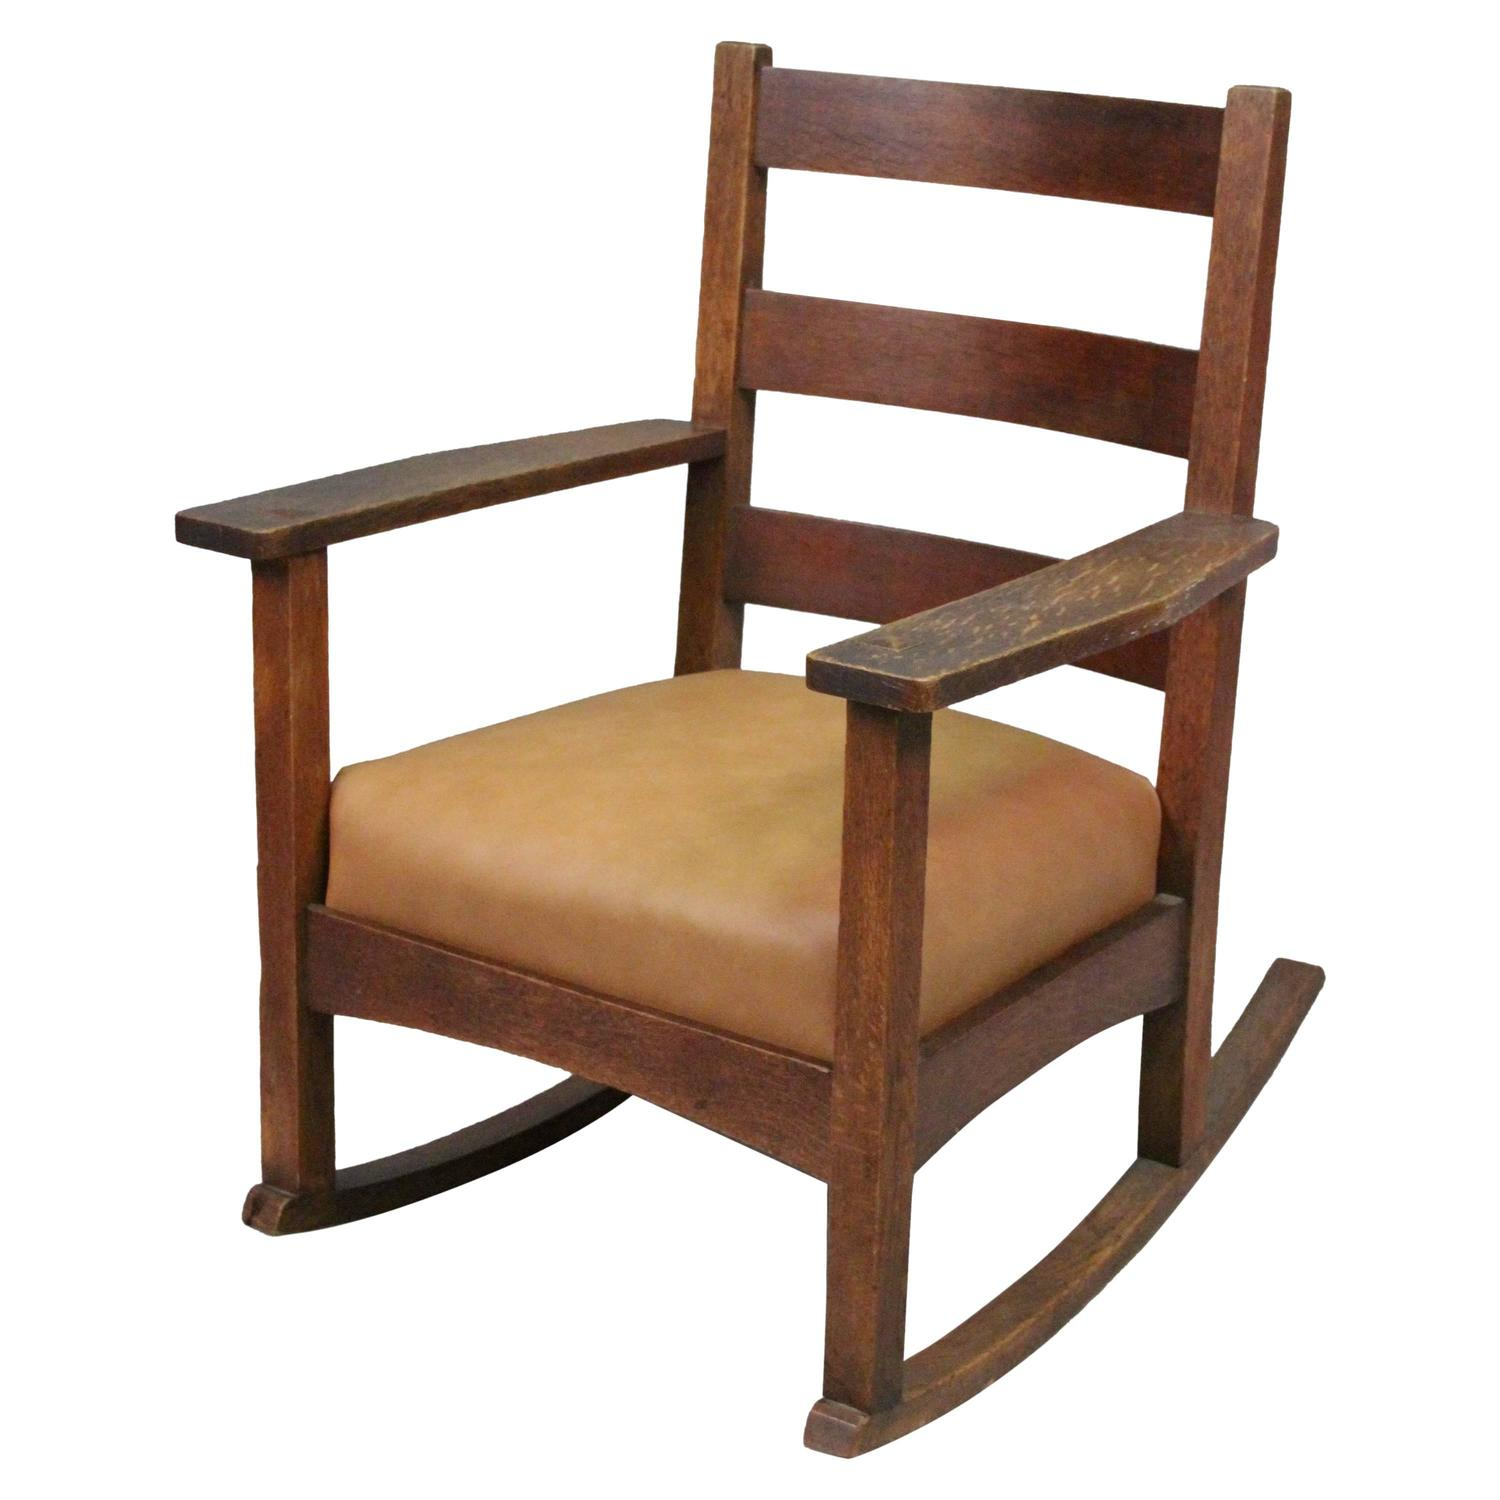 Gia o Rocking Chair in Oak with Woven Leather Seat For Sale at